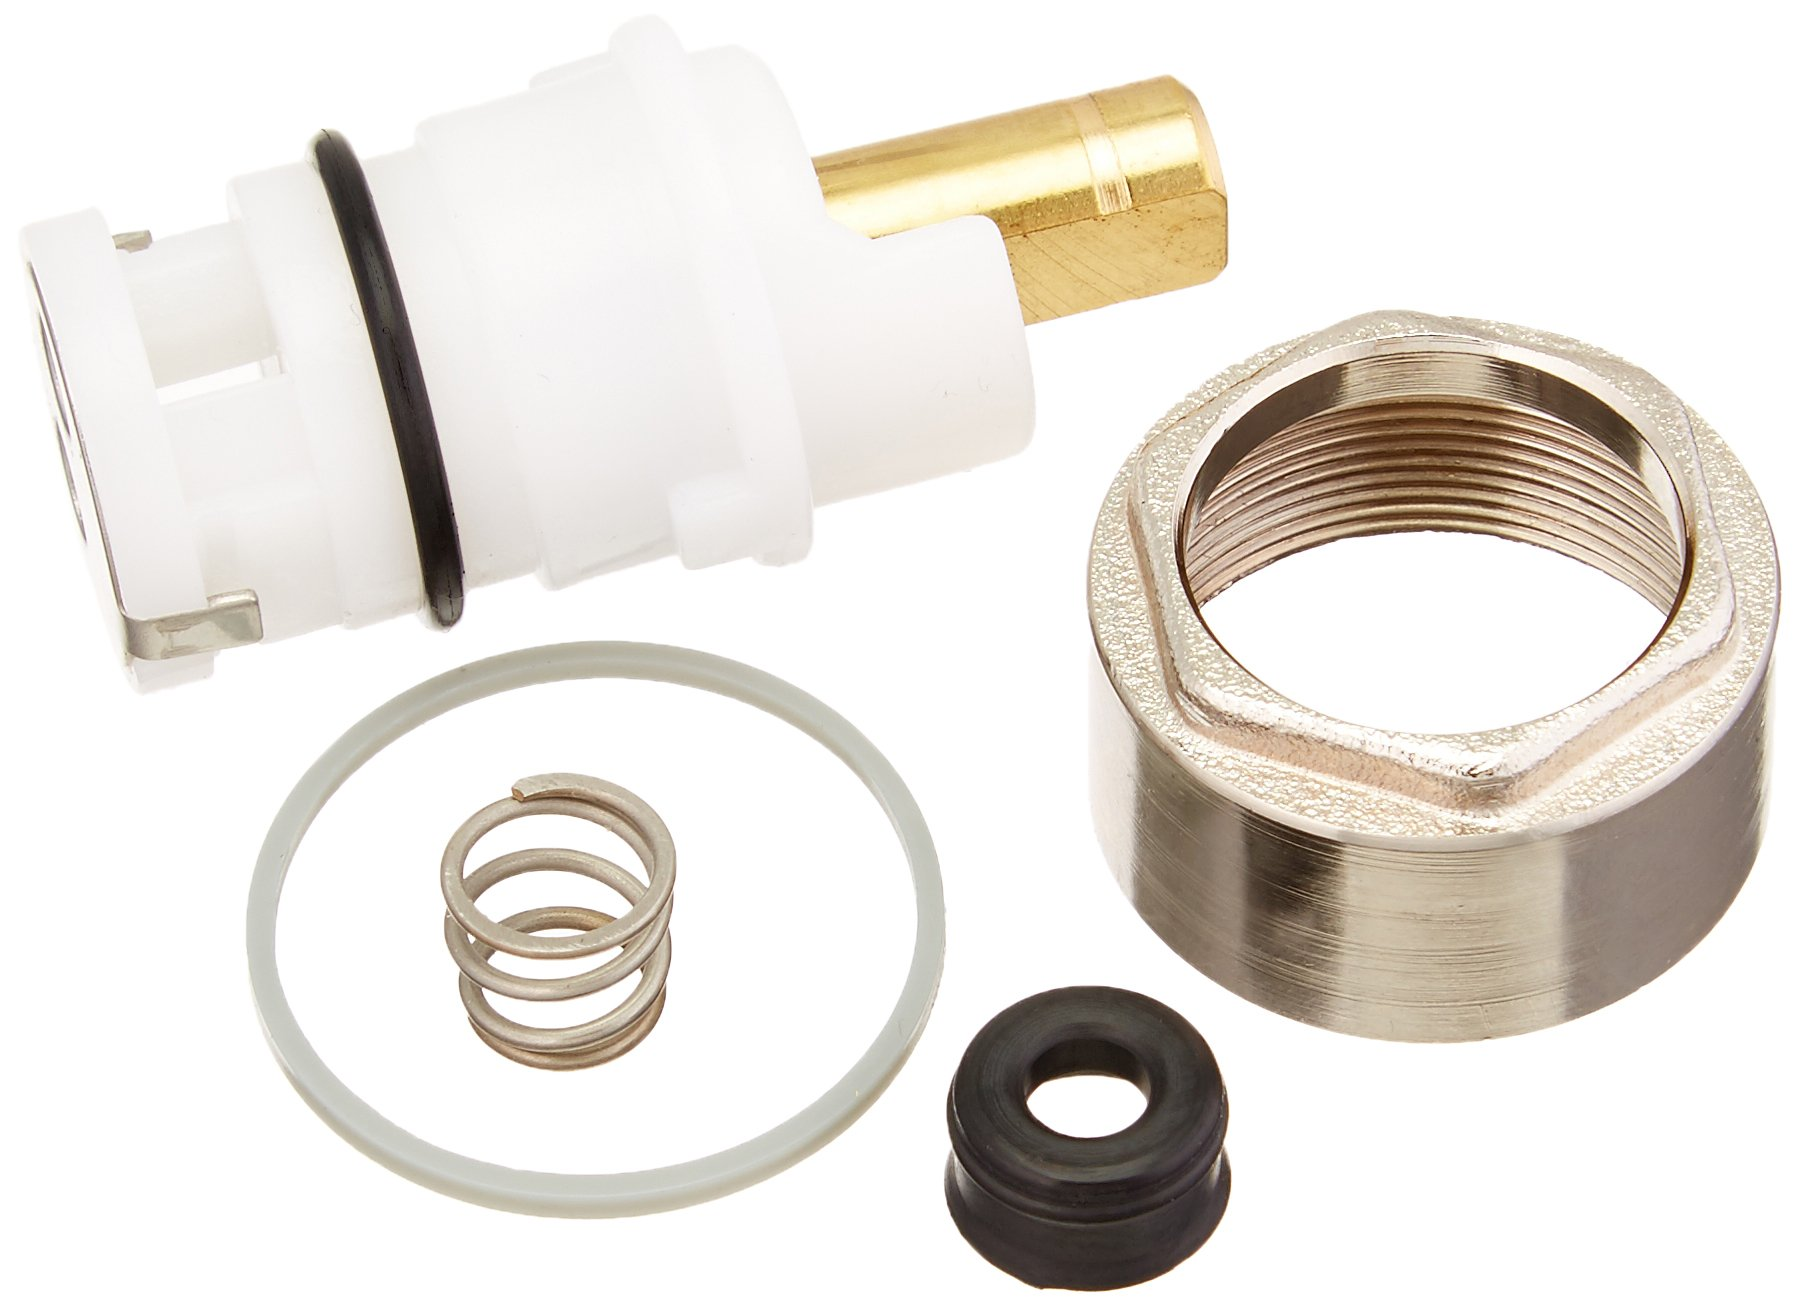 Delta RP64760 Talbott Stem Unit Assembly, Seat and Spring, Bonnet Nut and Washer, Chrome